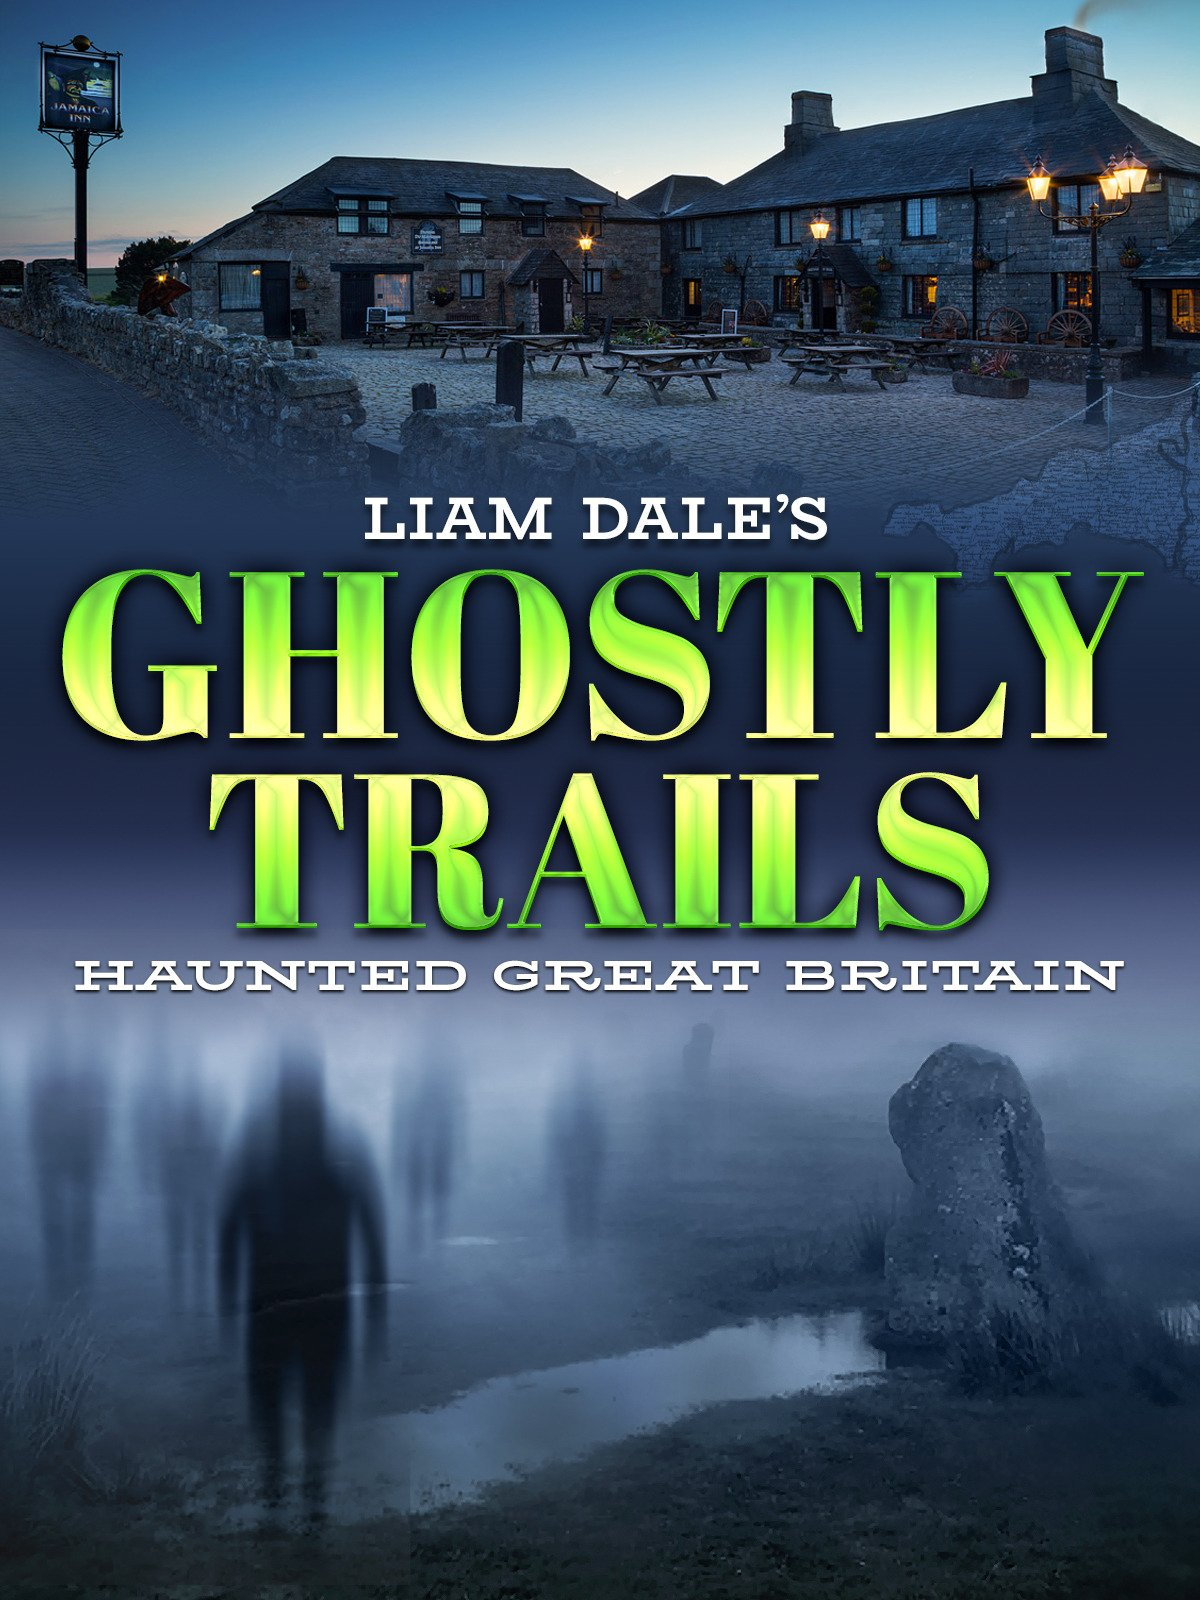 Liam Dale's Ghostly Trails: Haunted Great Britain